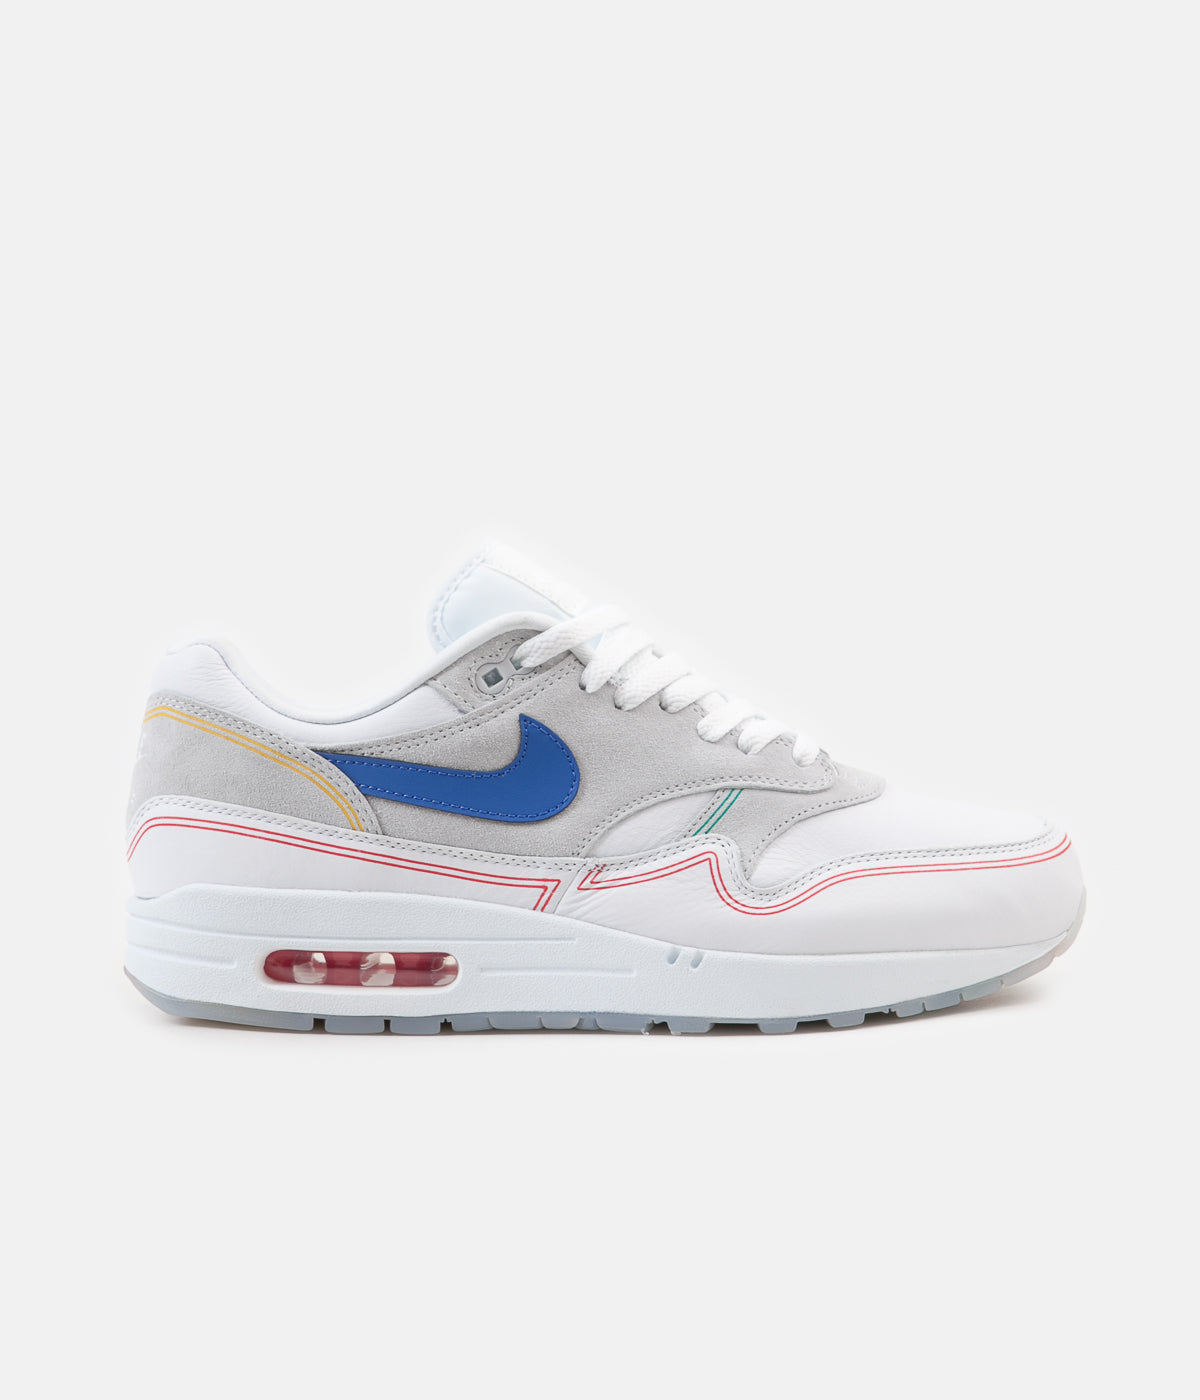 best loved ffba5 ce48a ... Nike Air Max 1 Centre Pompidou Shoes - Pure Platinum   Royal Blue -  White ...